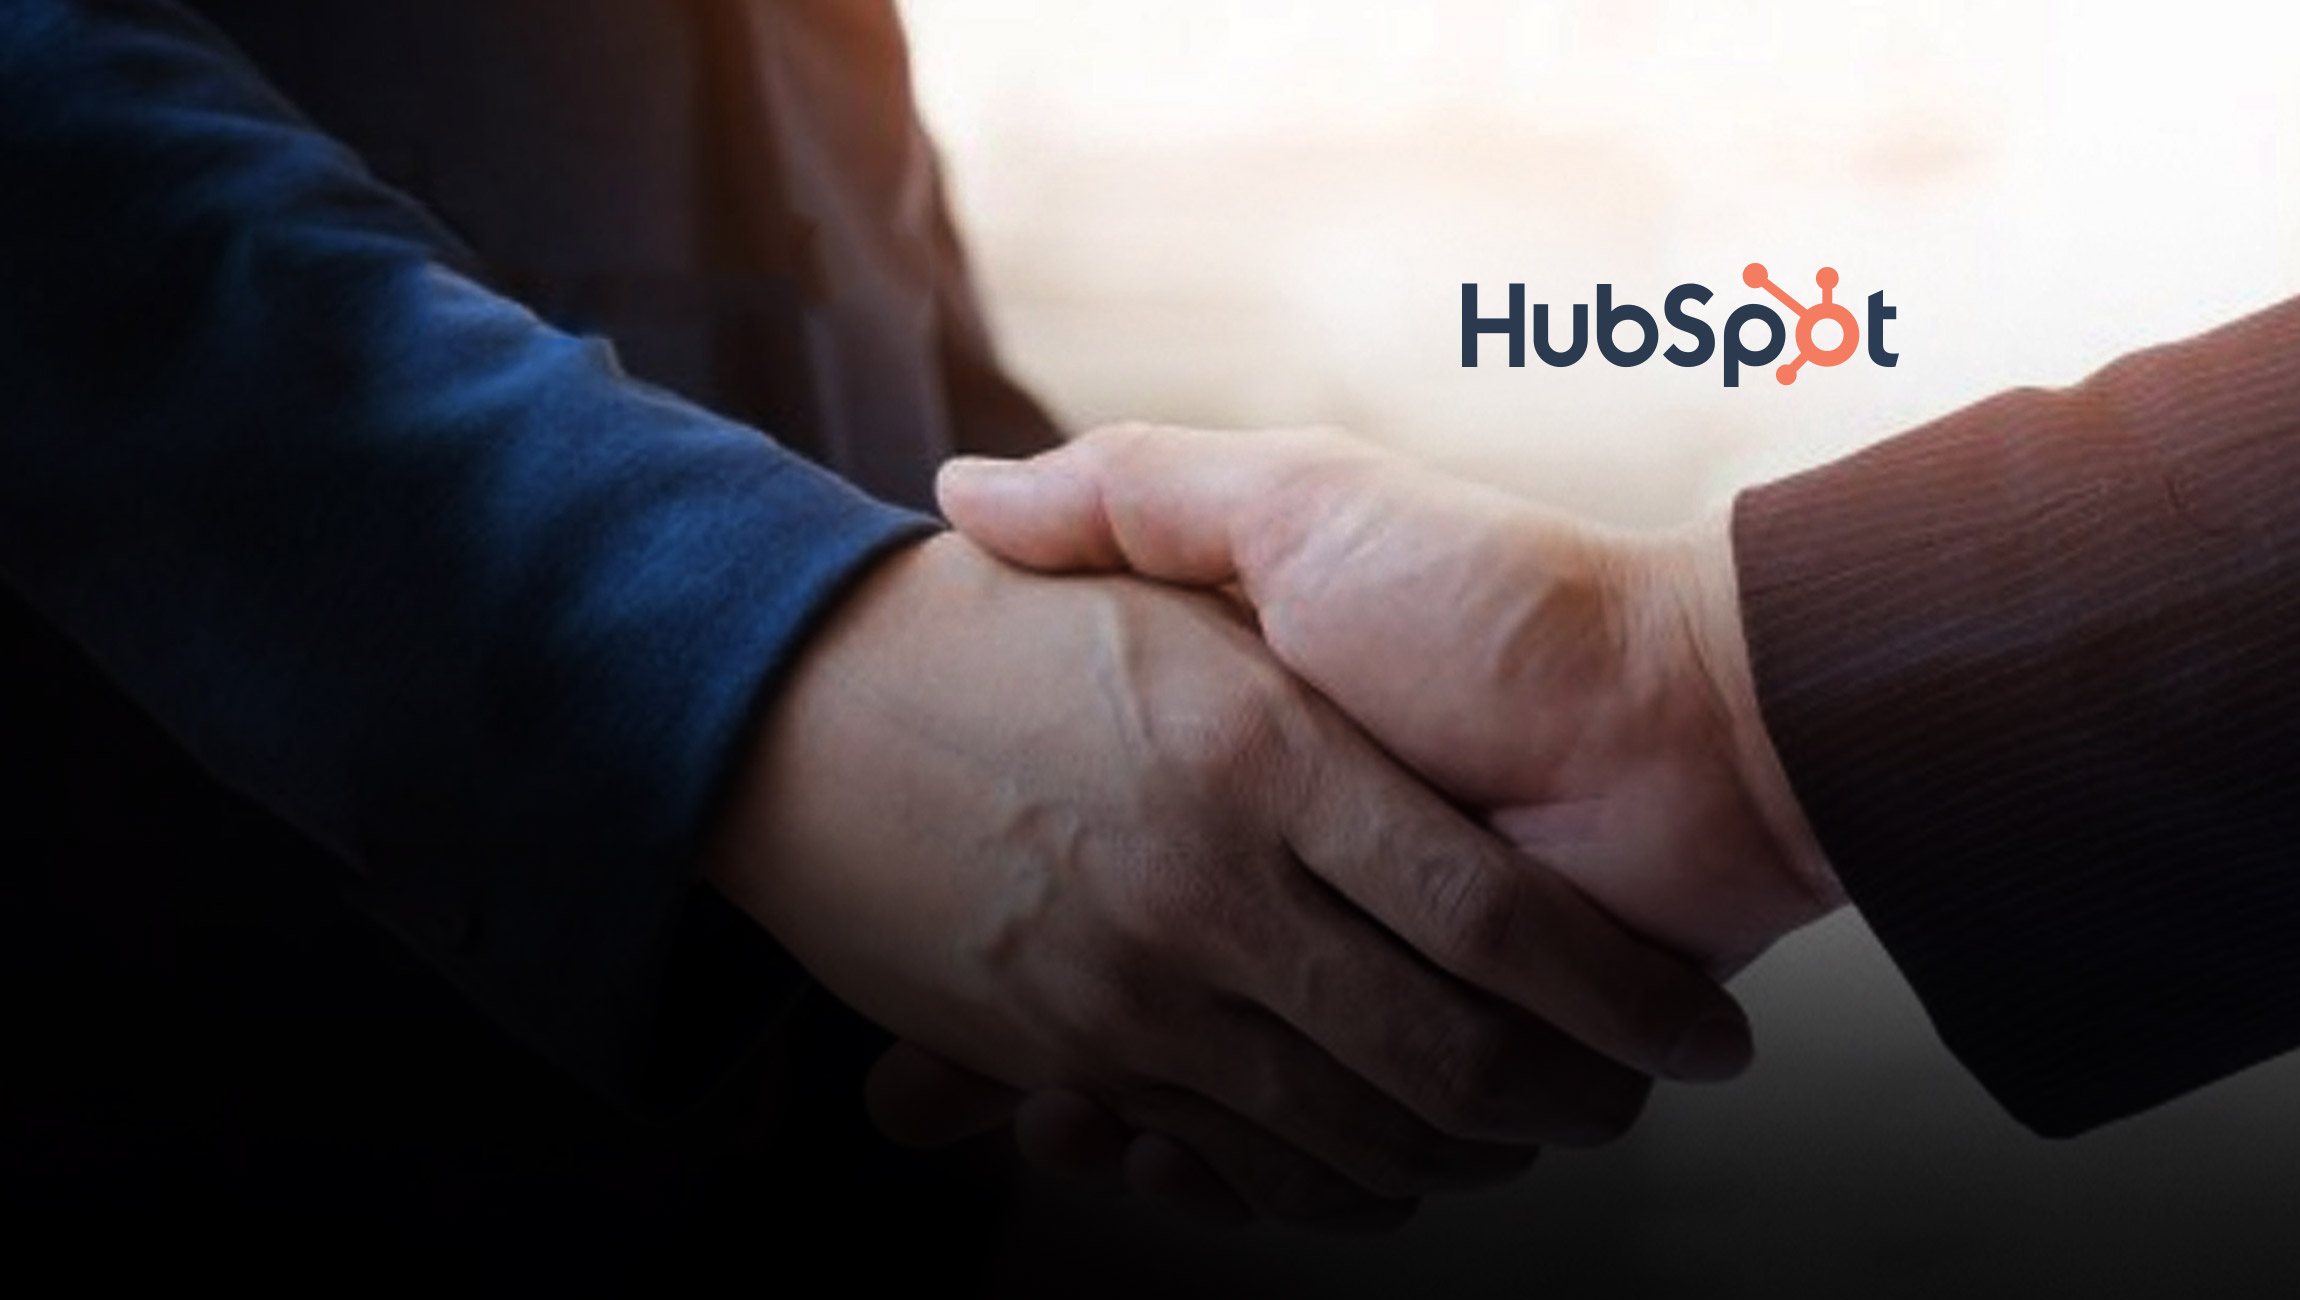 HubSpot Marks 10th Anniversary of its Partner Program With the Launch of Solutions Partner Program